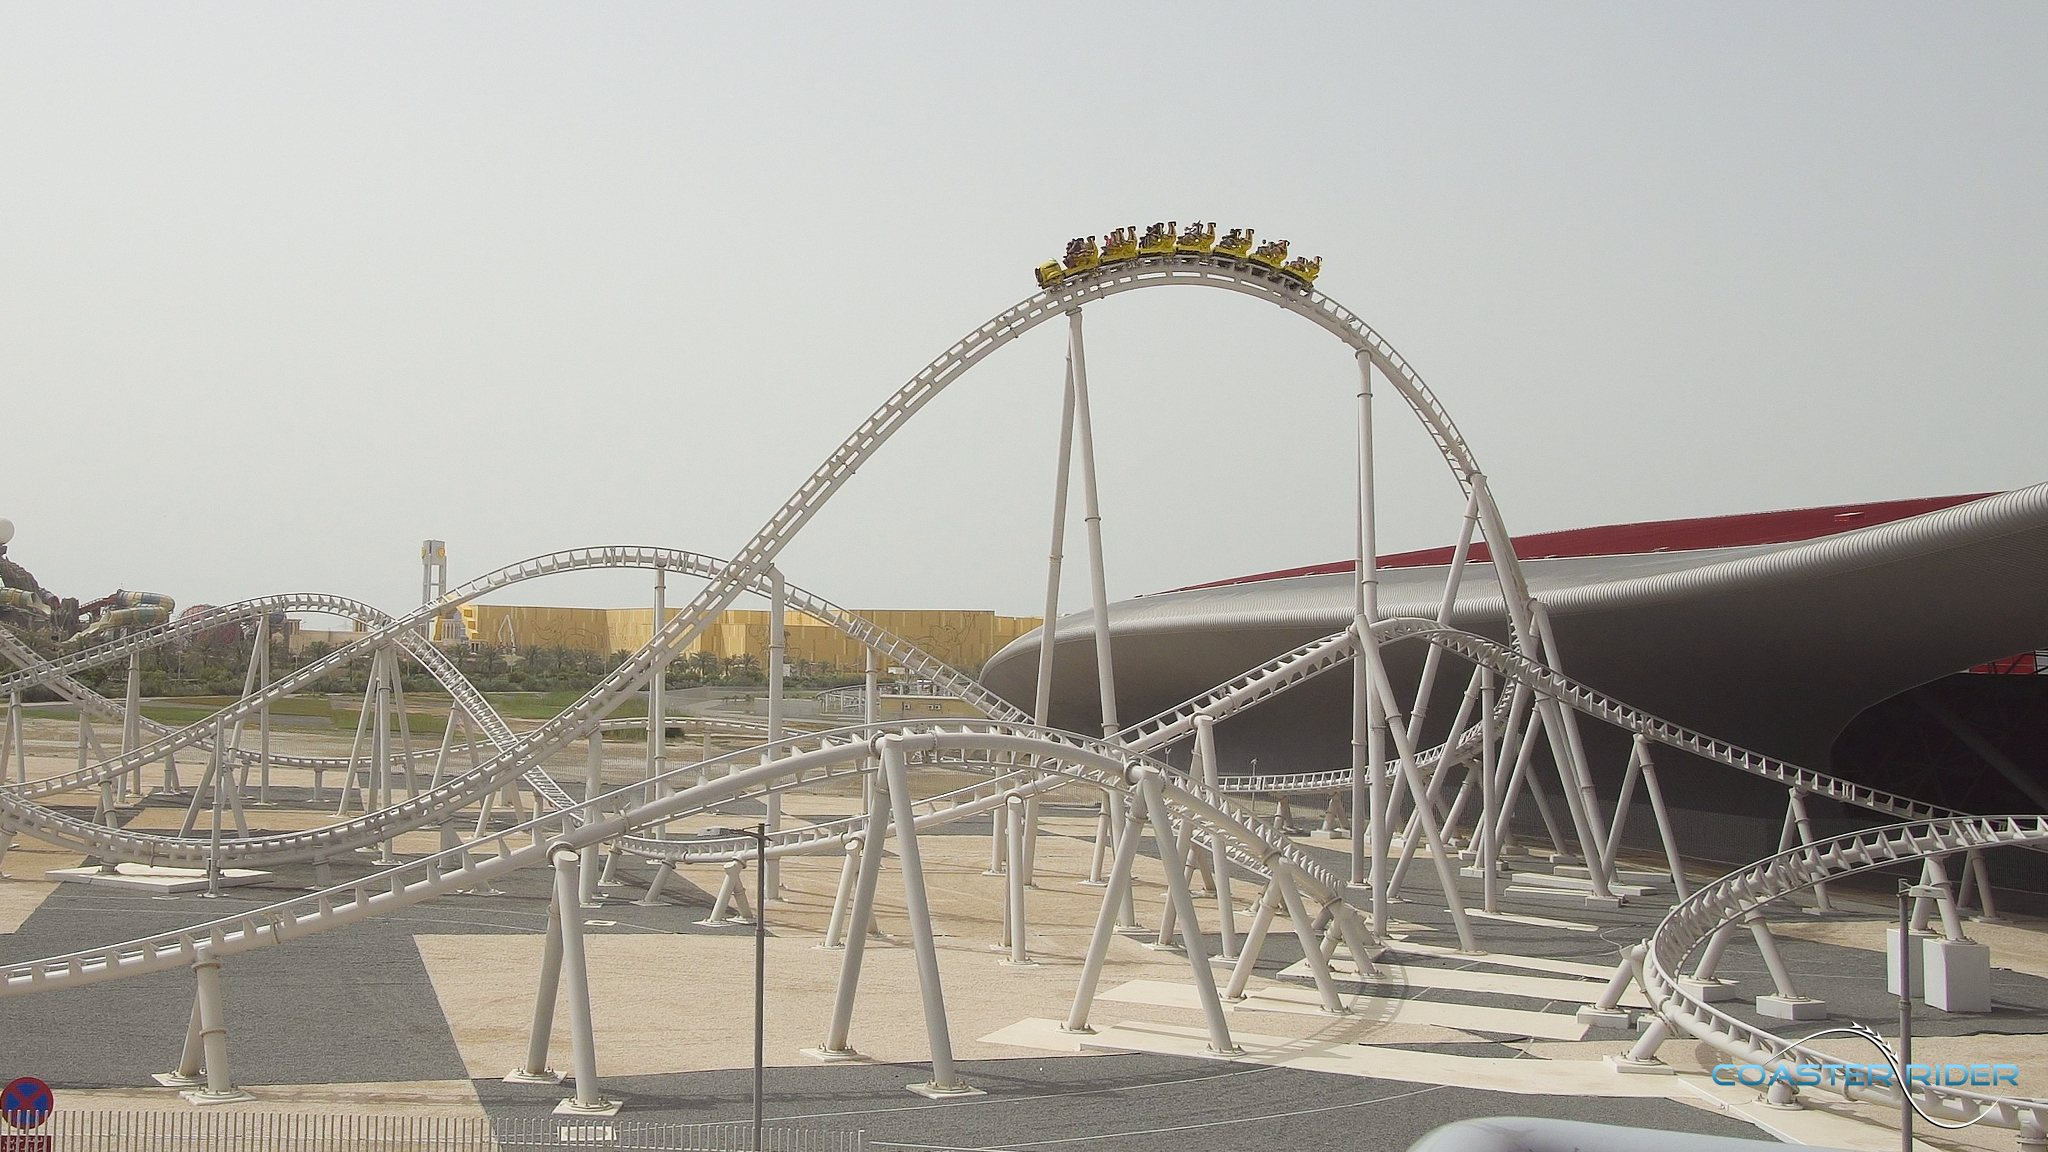 Ferrari World Abu Dhabi (14/05/2018)